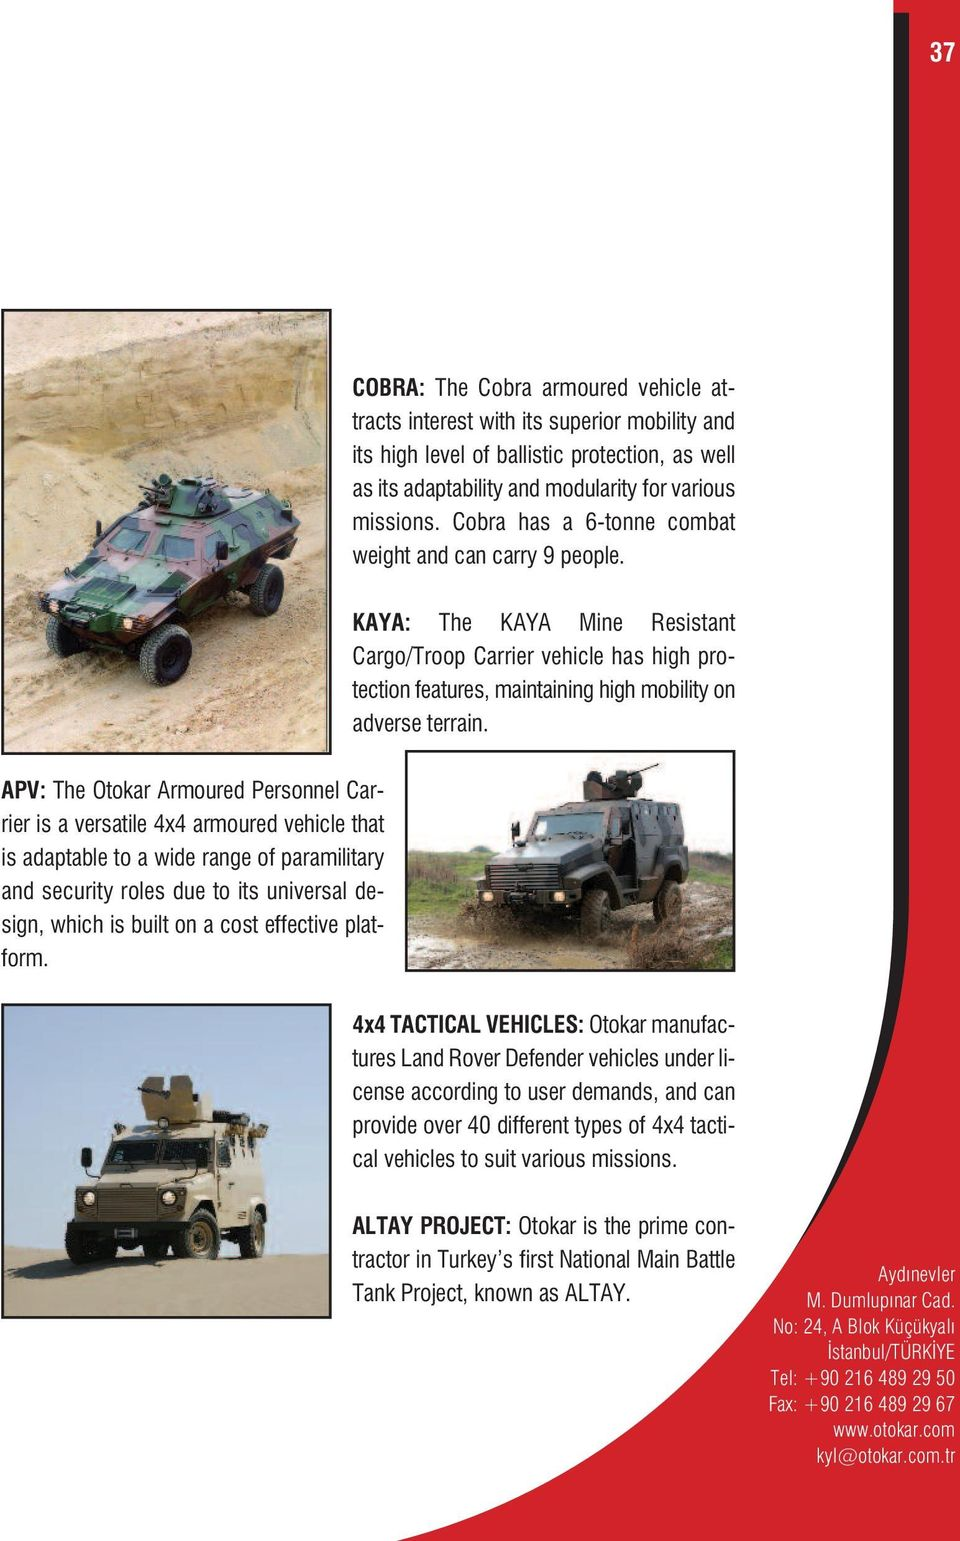 APV: The Otokar Armoured Personnel Carrier is a versatile 4x4 armoured vehicle that is adaptable to a wide range of paramilitary and security roles due to its universal design, which is built on a